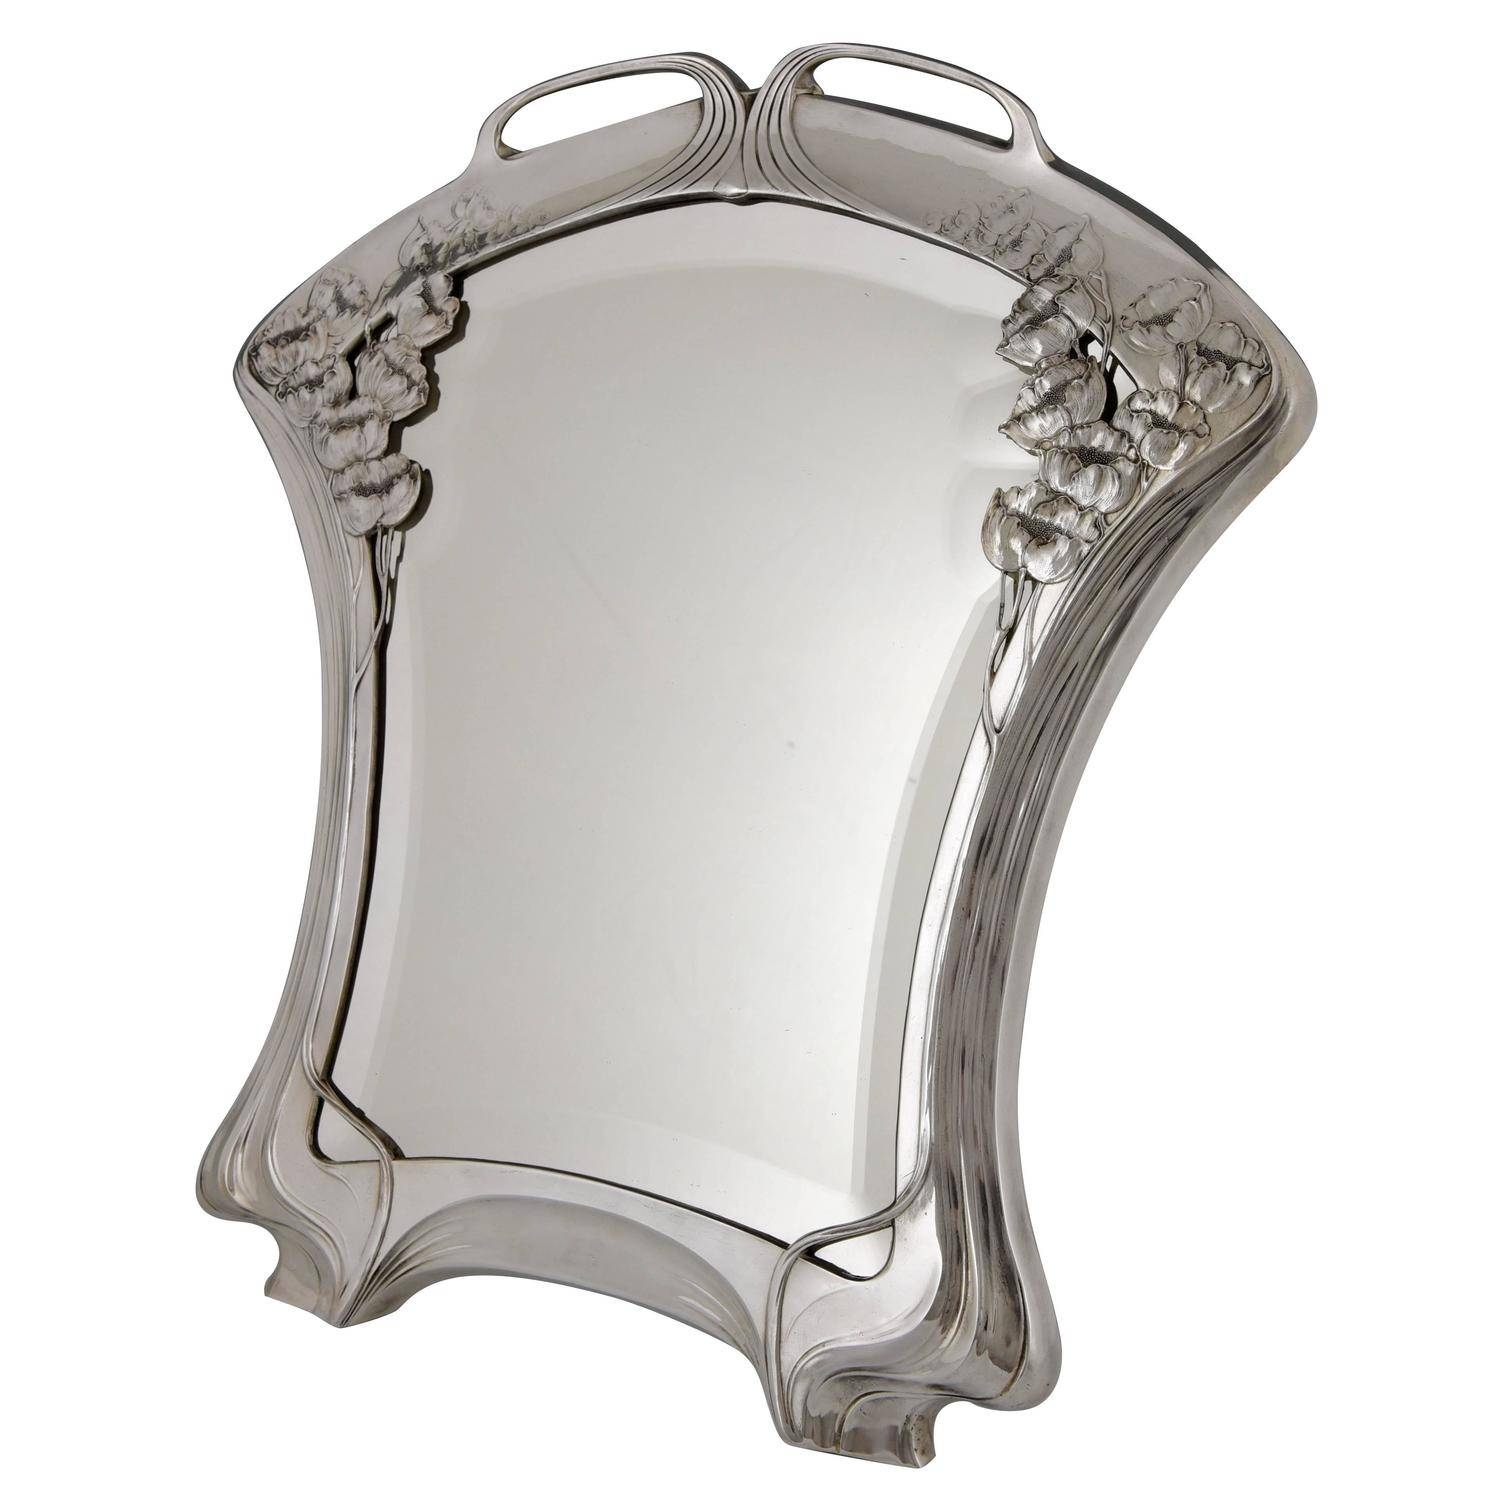 Silvered Art Nouveau Mirrororivit Beveled Glass, Germany 1904 with Art Nouveau Mirrors (Image 21 of 25)